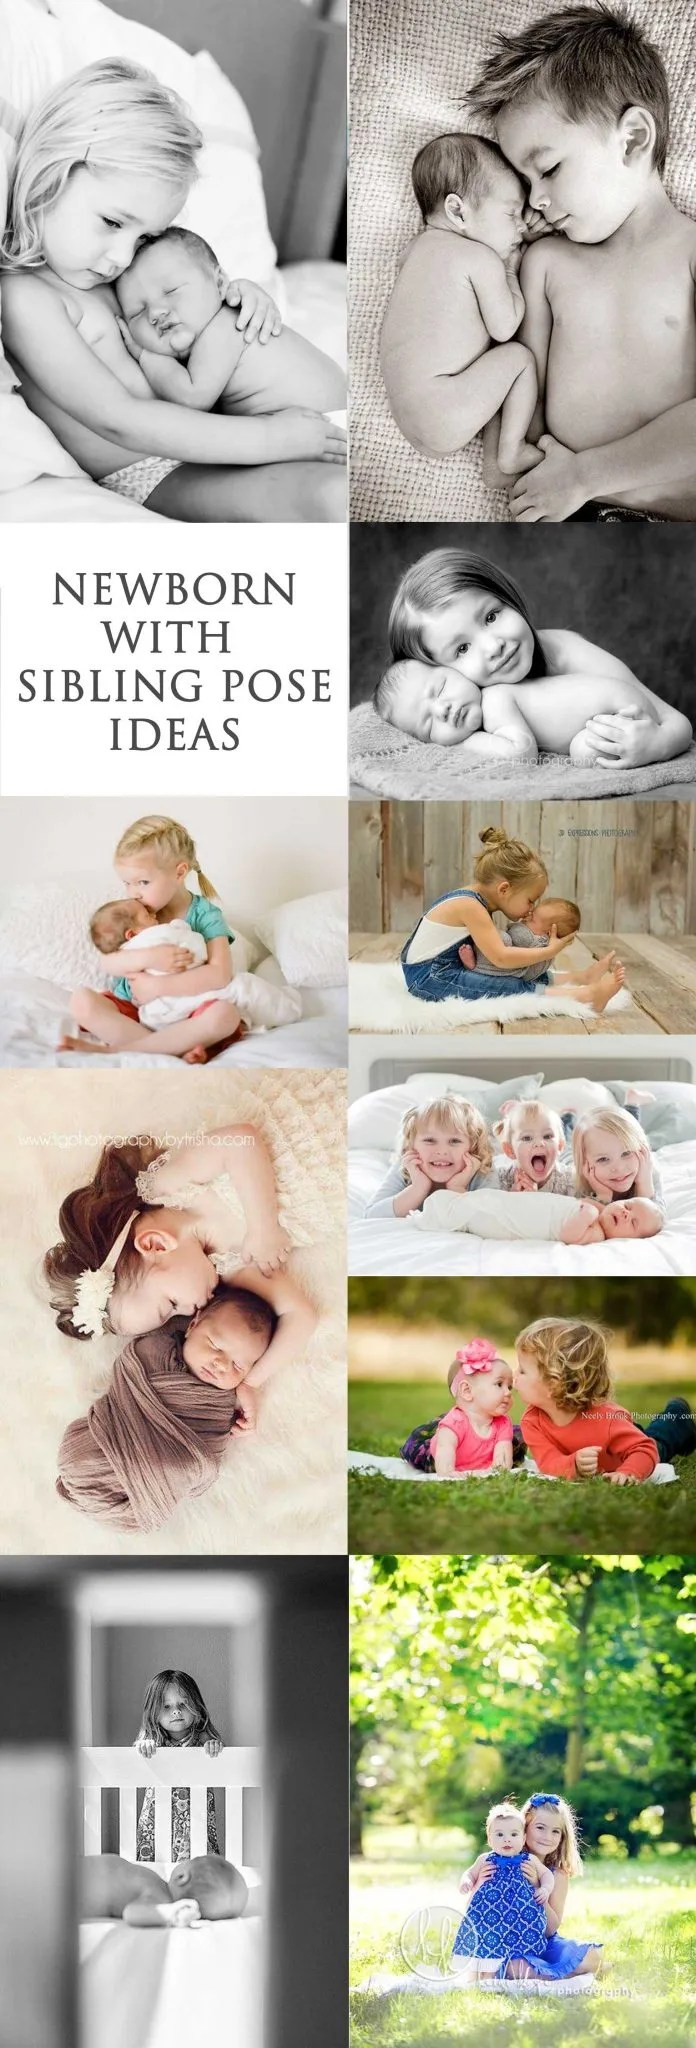 Newborn Pose Ideas With Siblings